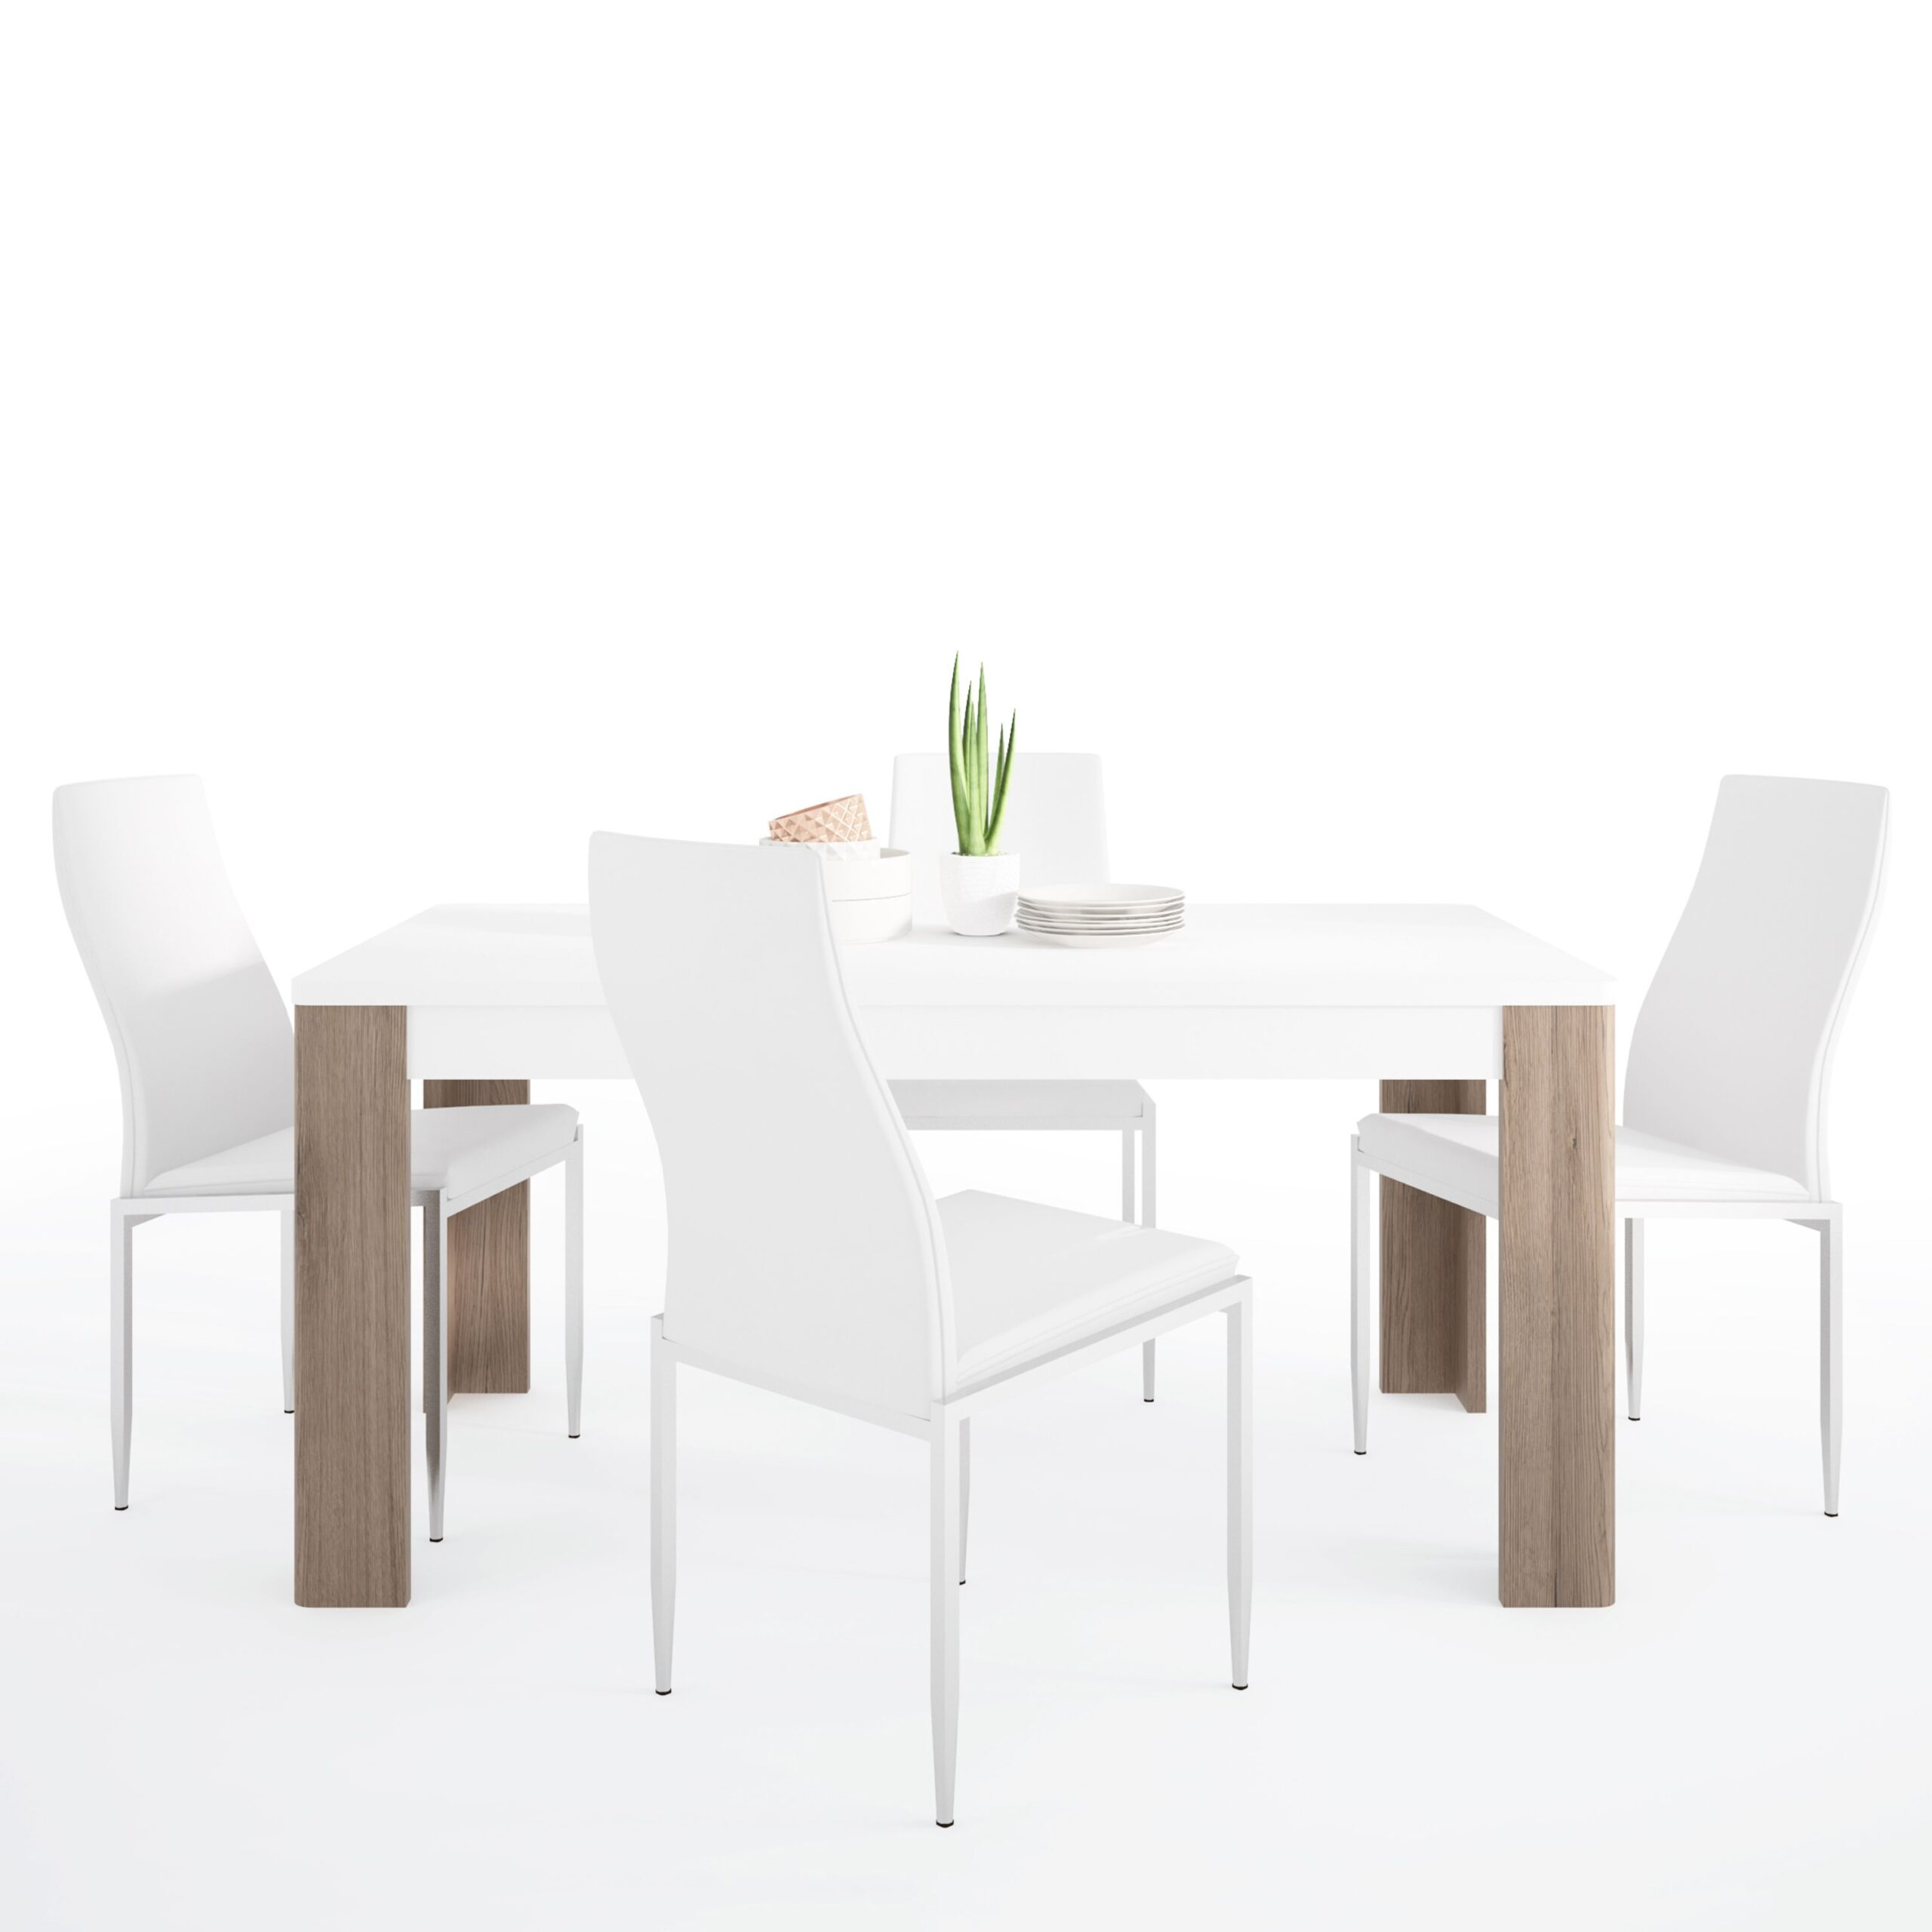 Canada Set Package Canada 160 Cm Table + 6 Lillie High Chair White.